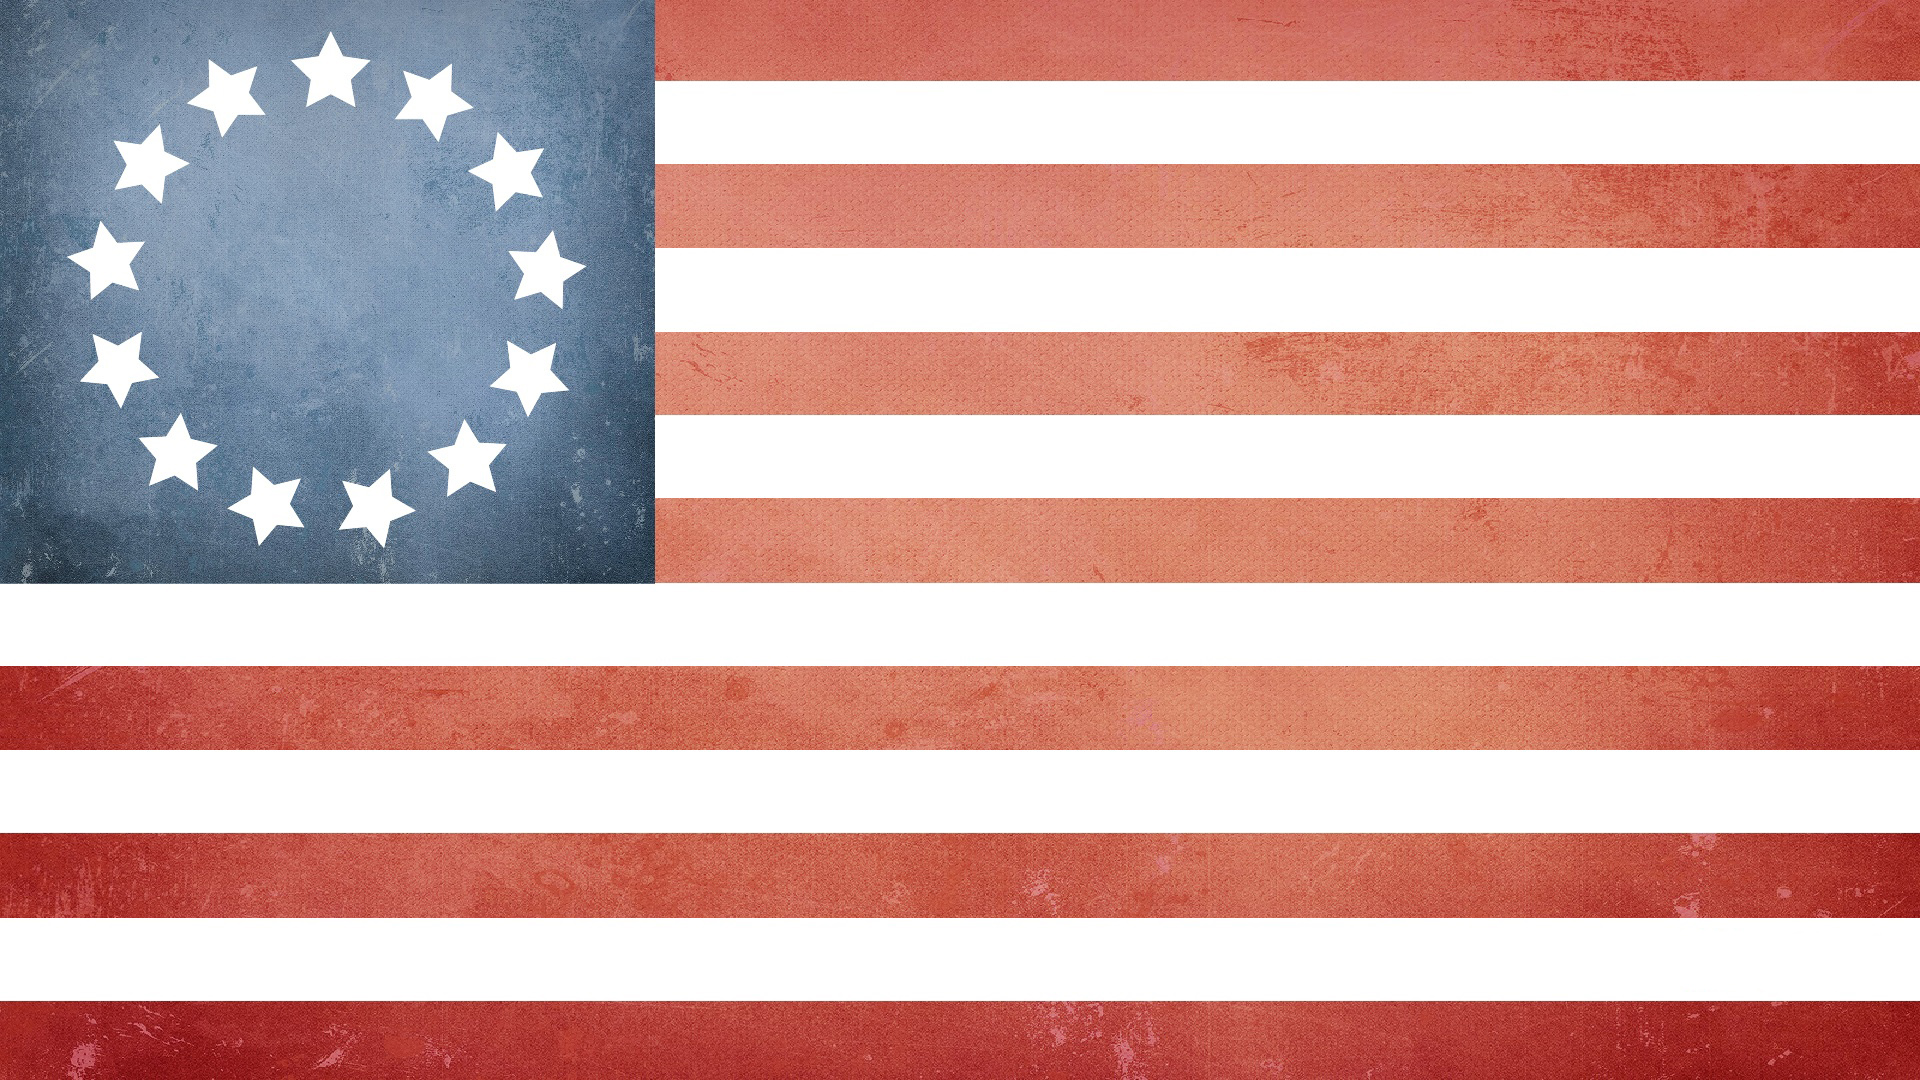 13_star_us_flag-HD